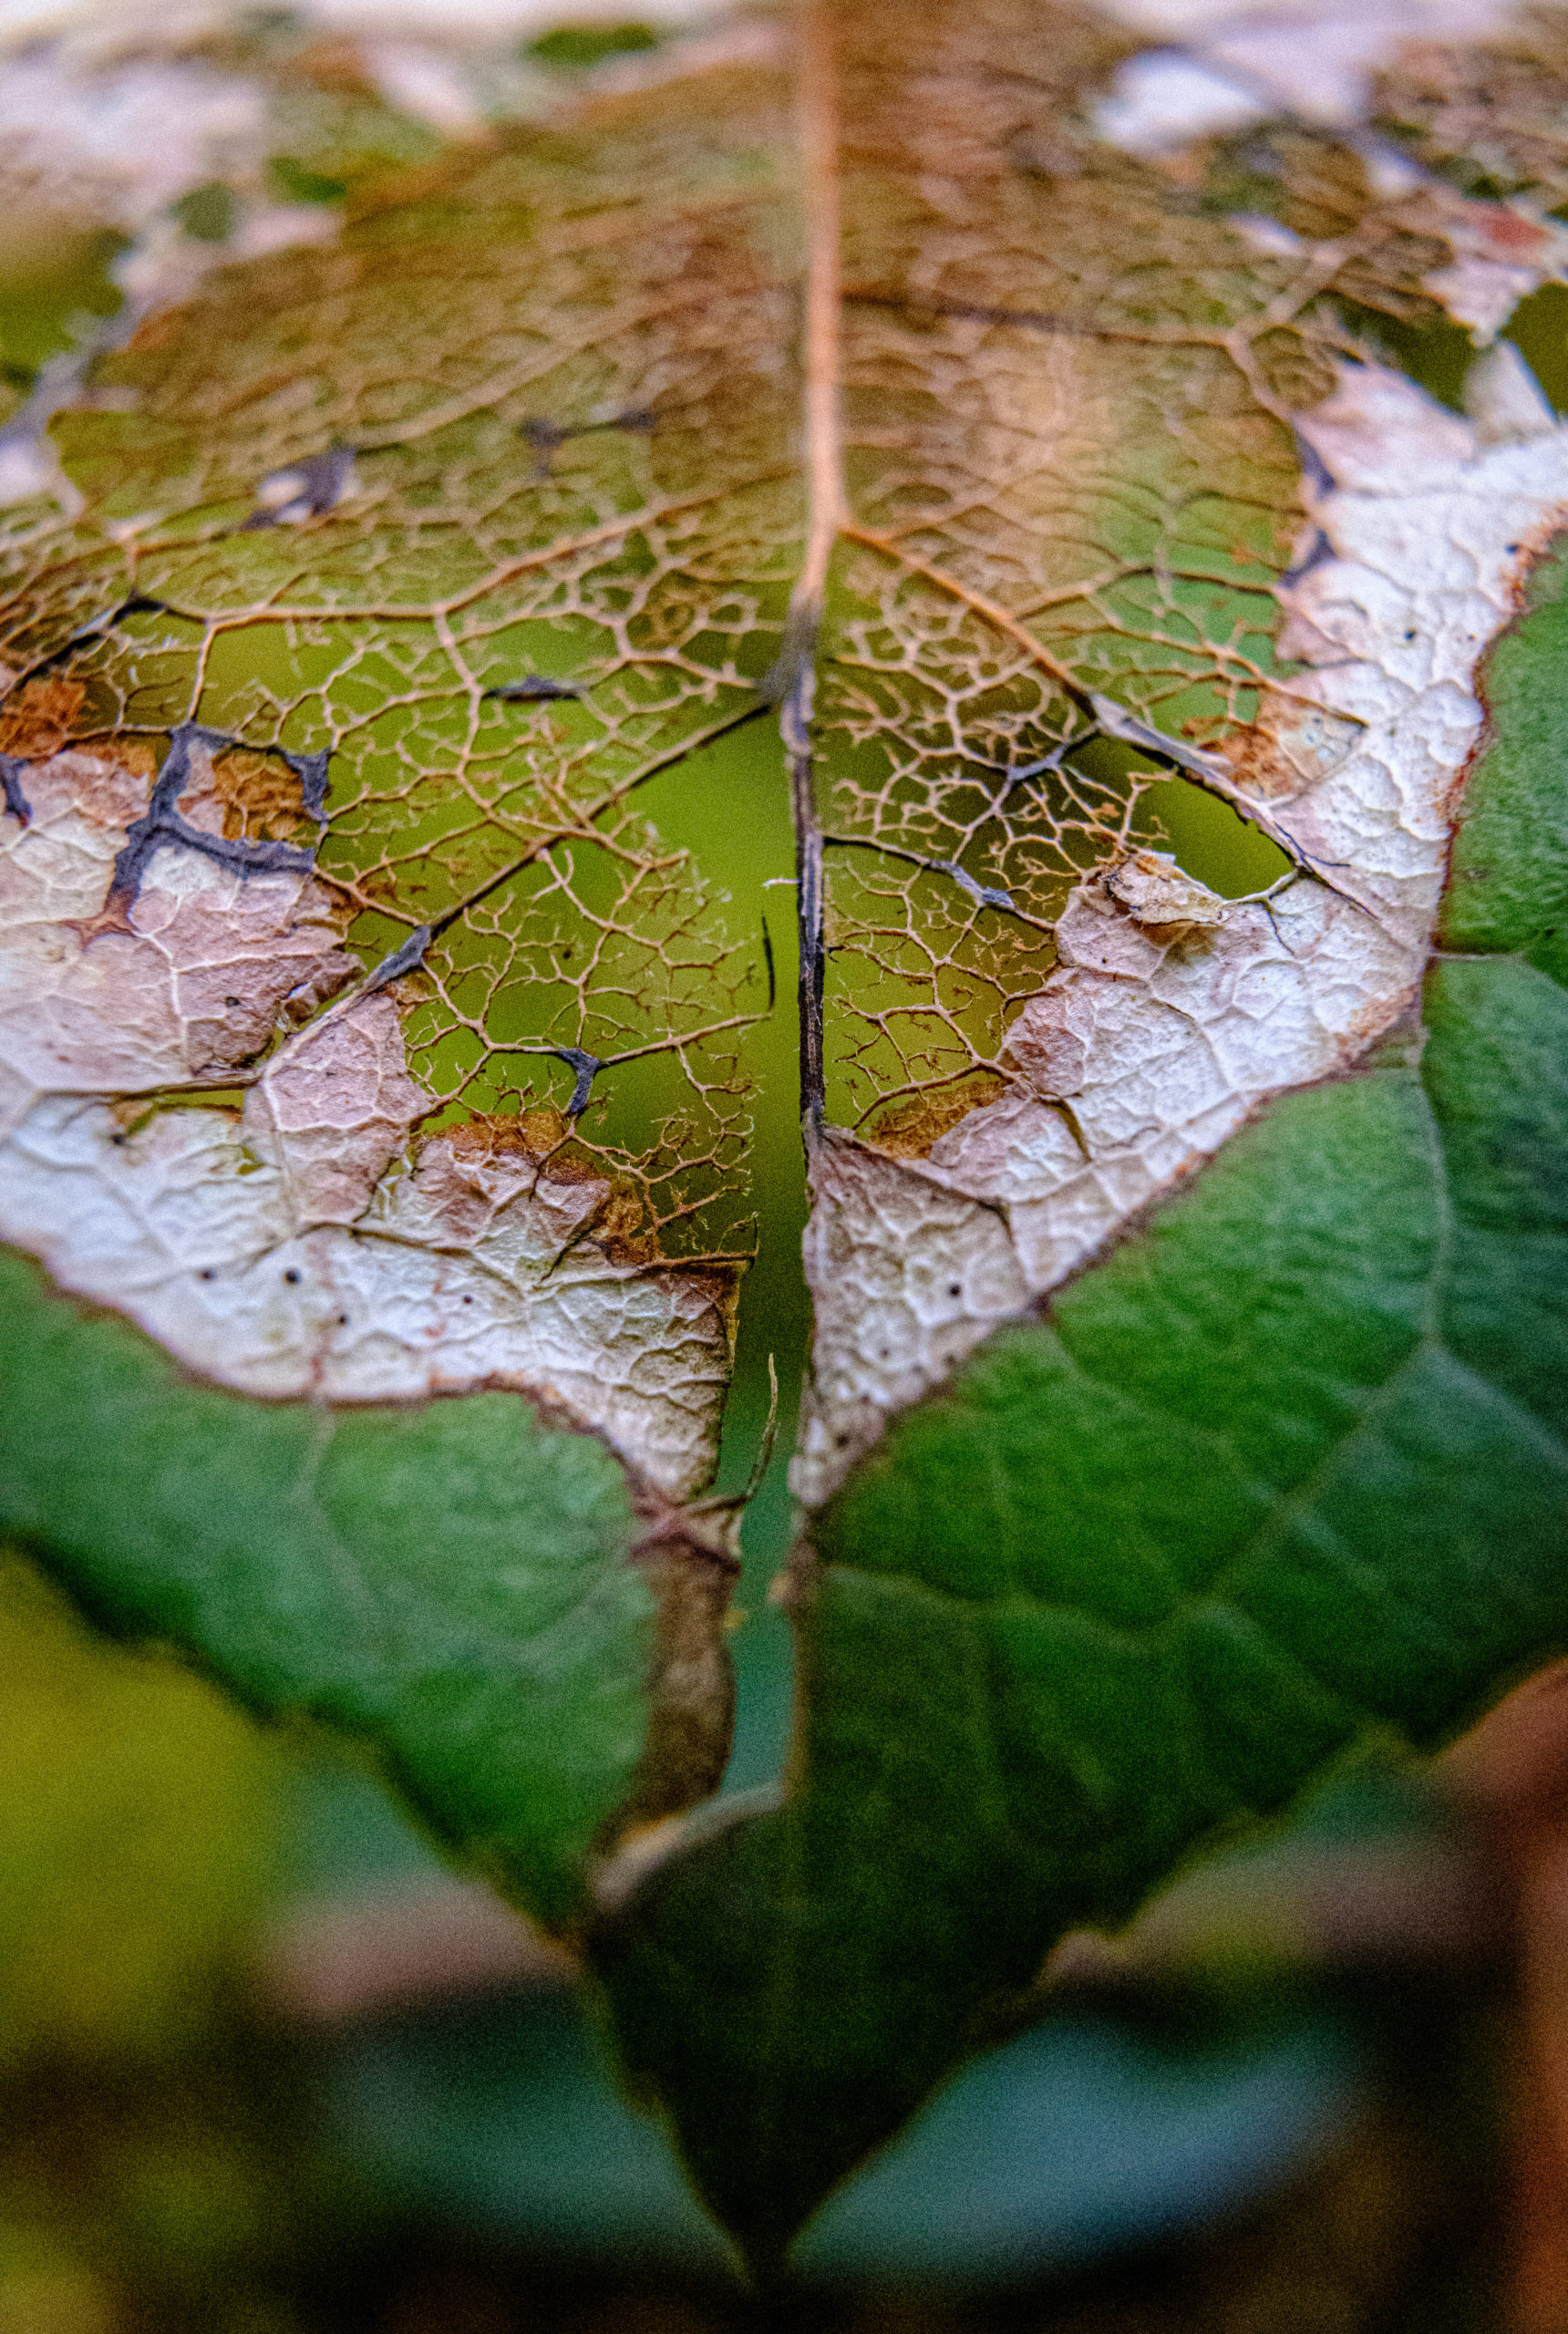 A macro of a deteriorating leaf